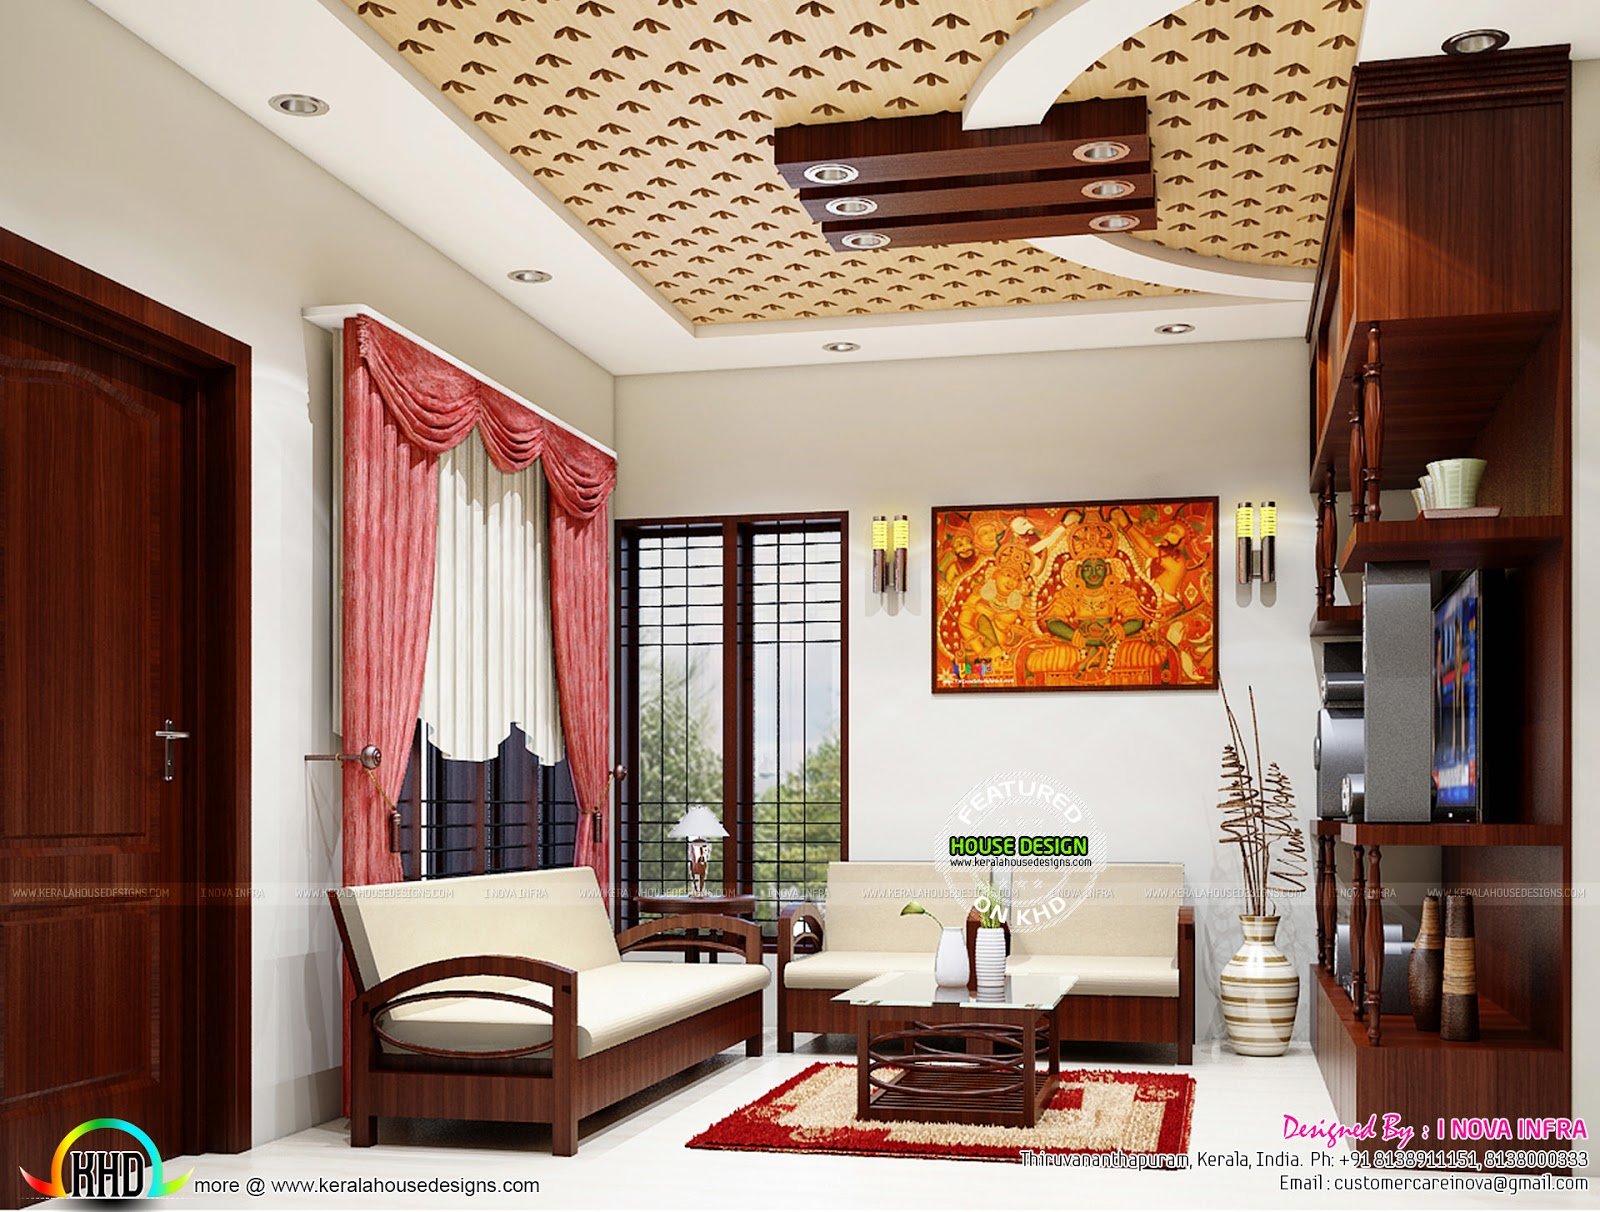 Kerala traditional interiors kerala home design and for House design interior decorating